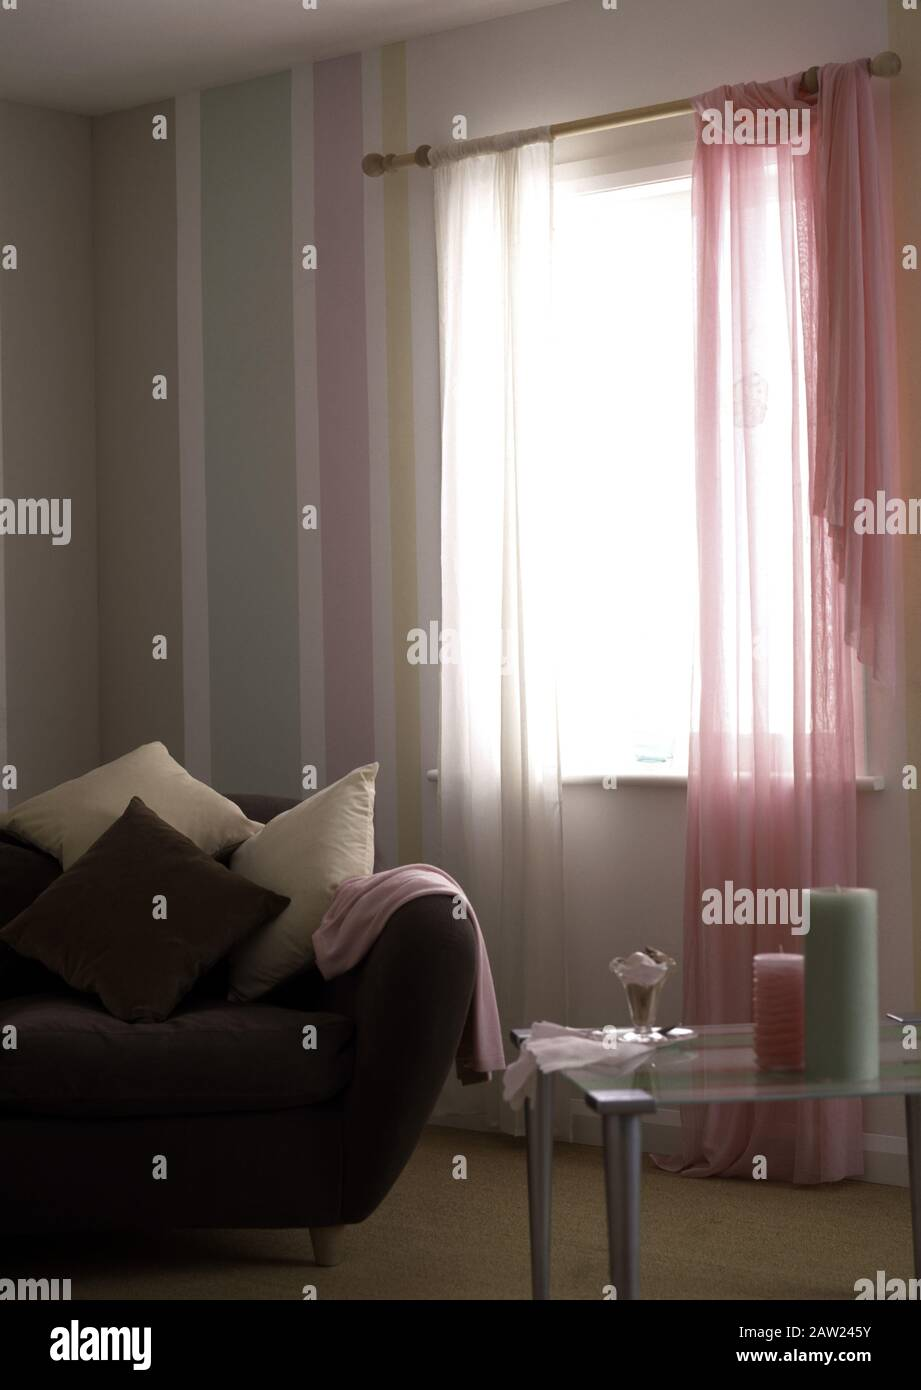 Pink And White Voile Curtains On Window In An Economy Style Living Room With A Modern Sofa Stock Photo Alamy